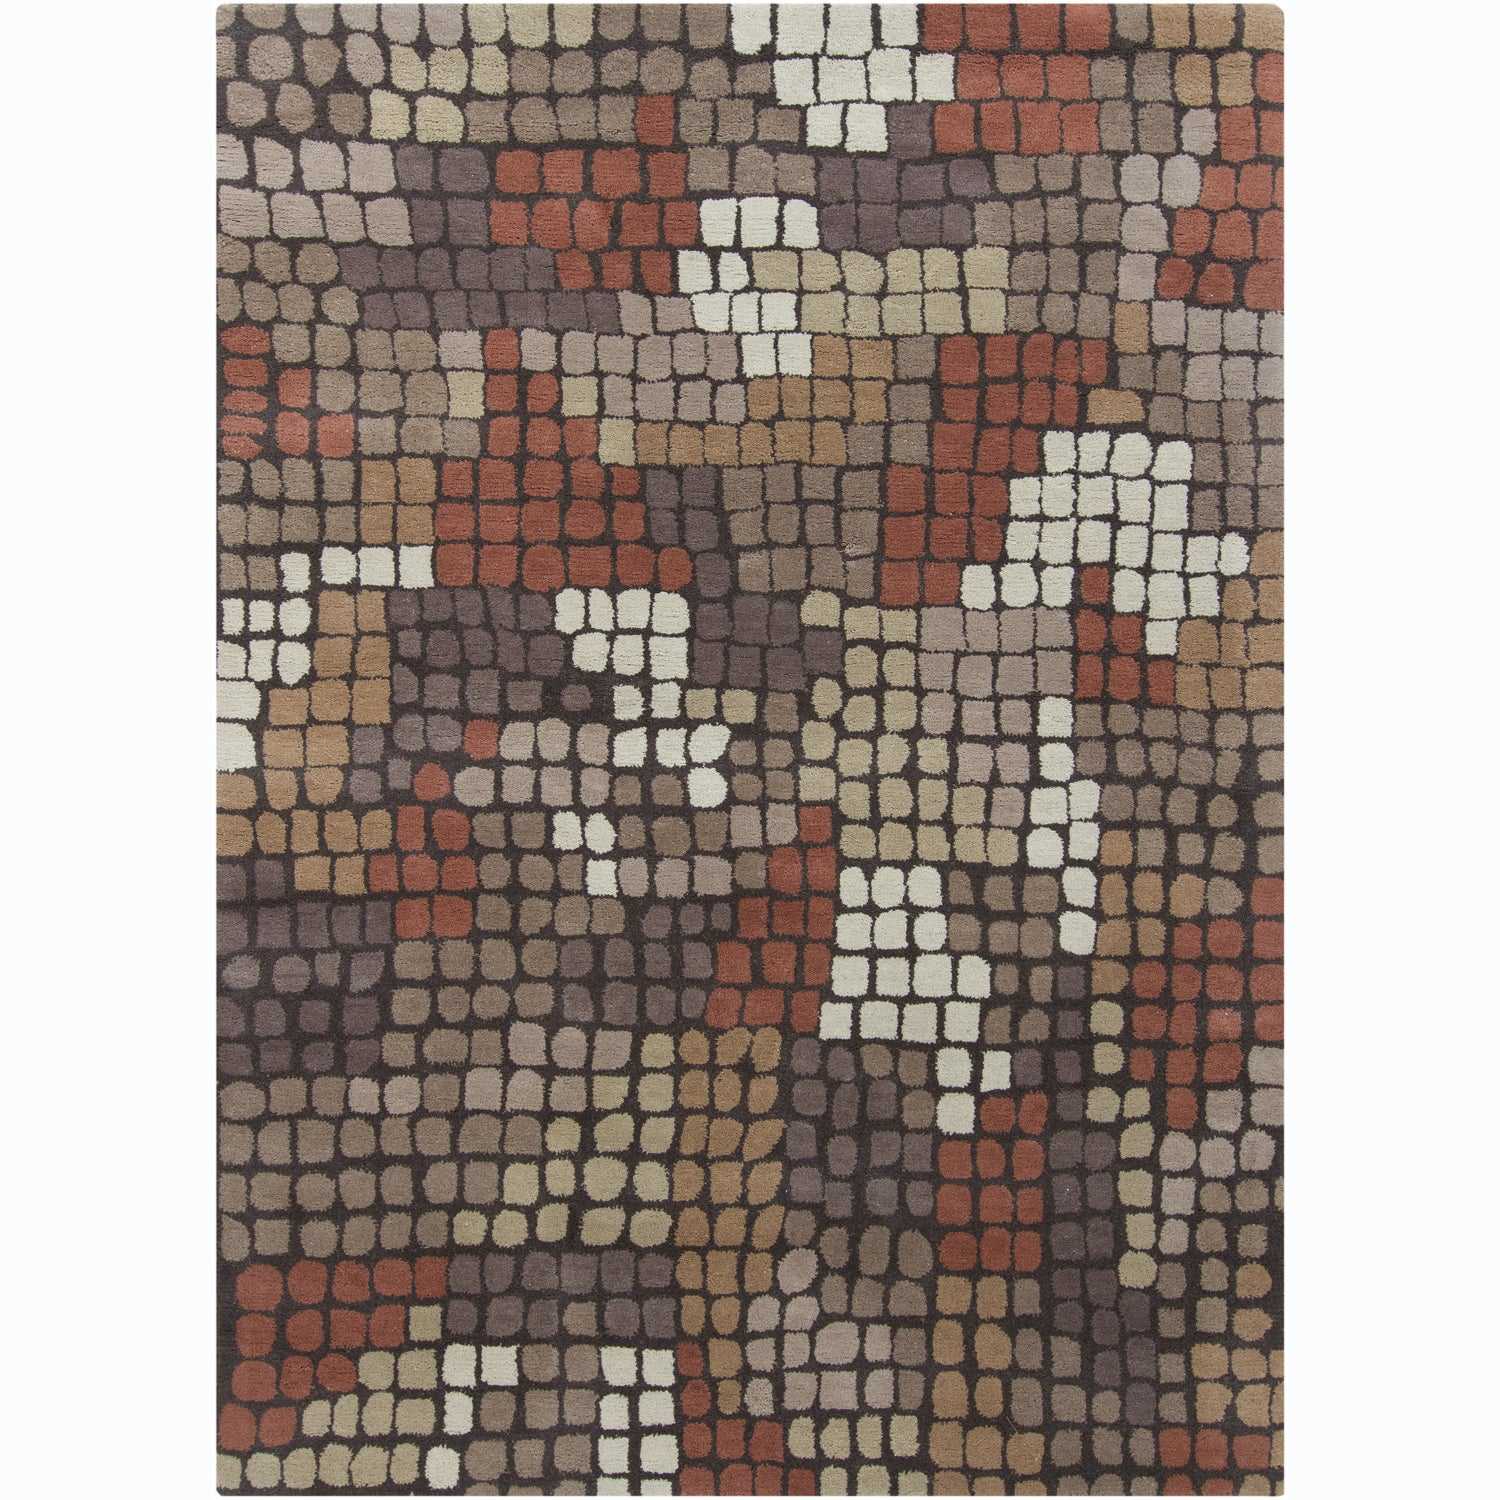 Hand-tufted Mani Abstract Brown Wool Rug (5' x 7')